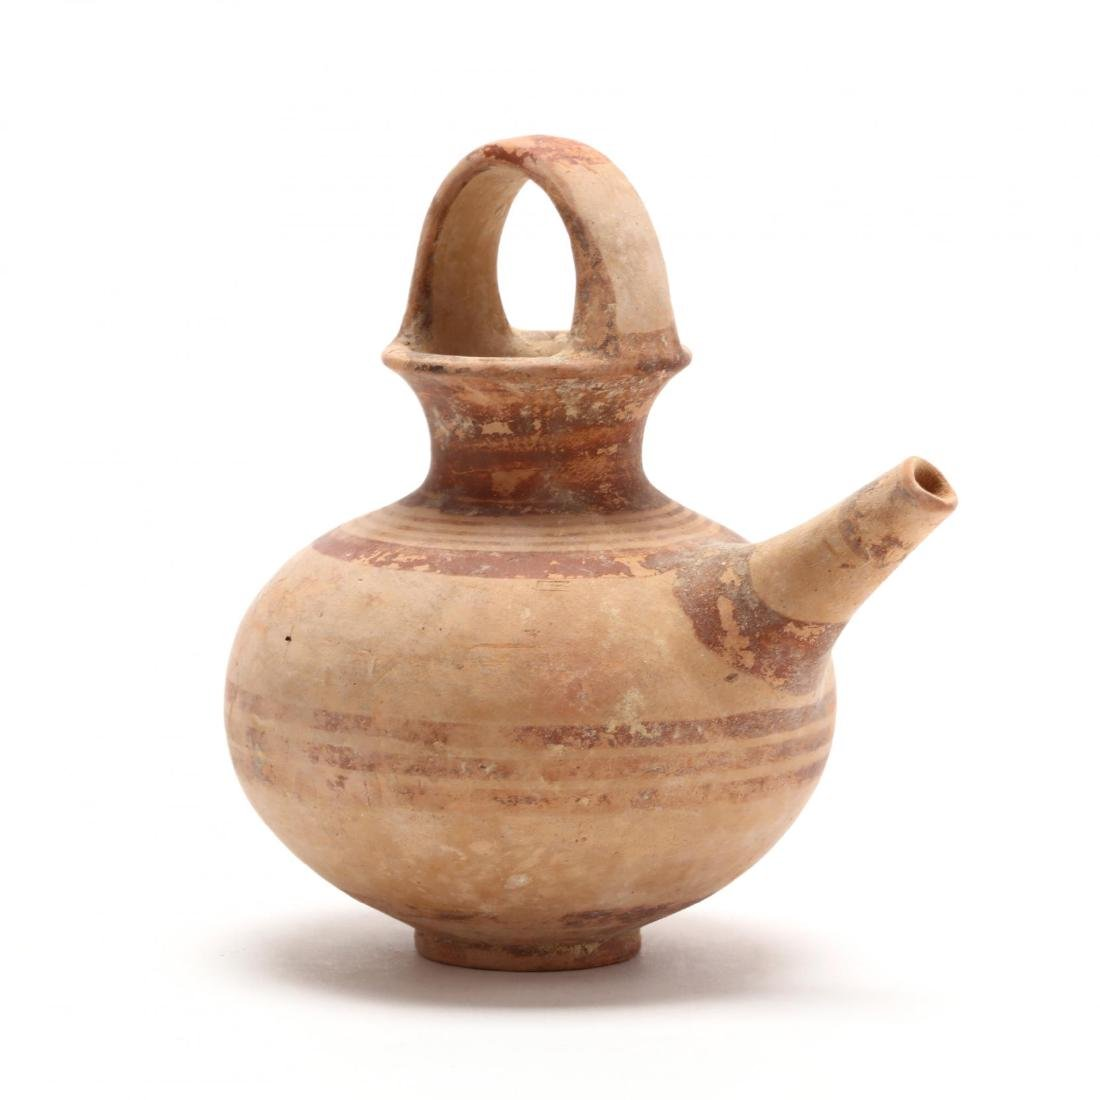 Cypriot Late Bronze Age Juglet With Spout